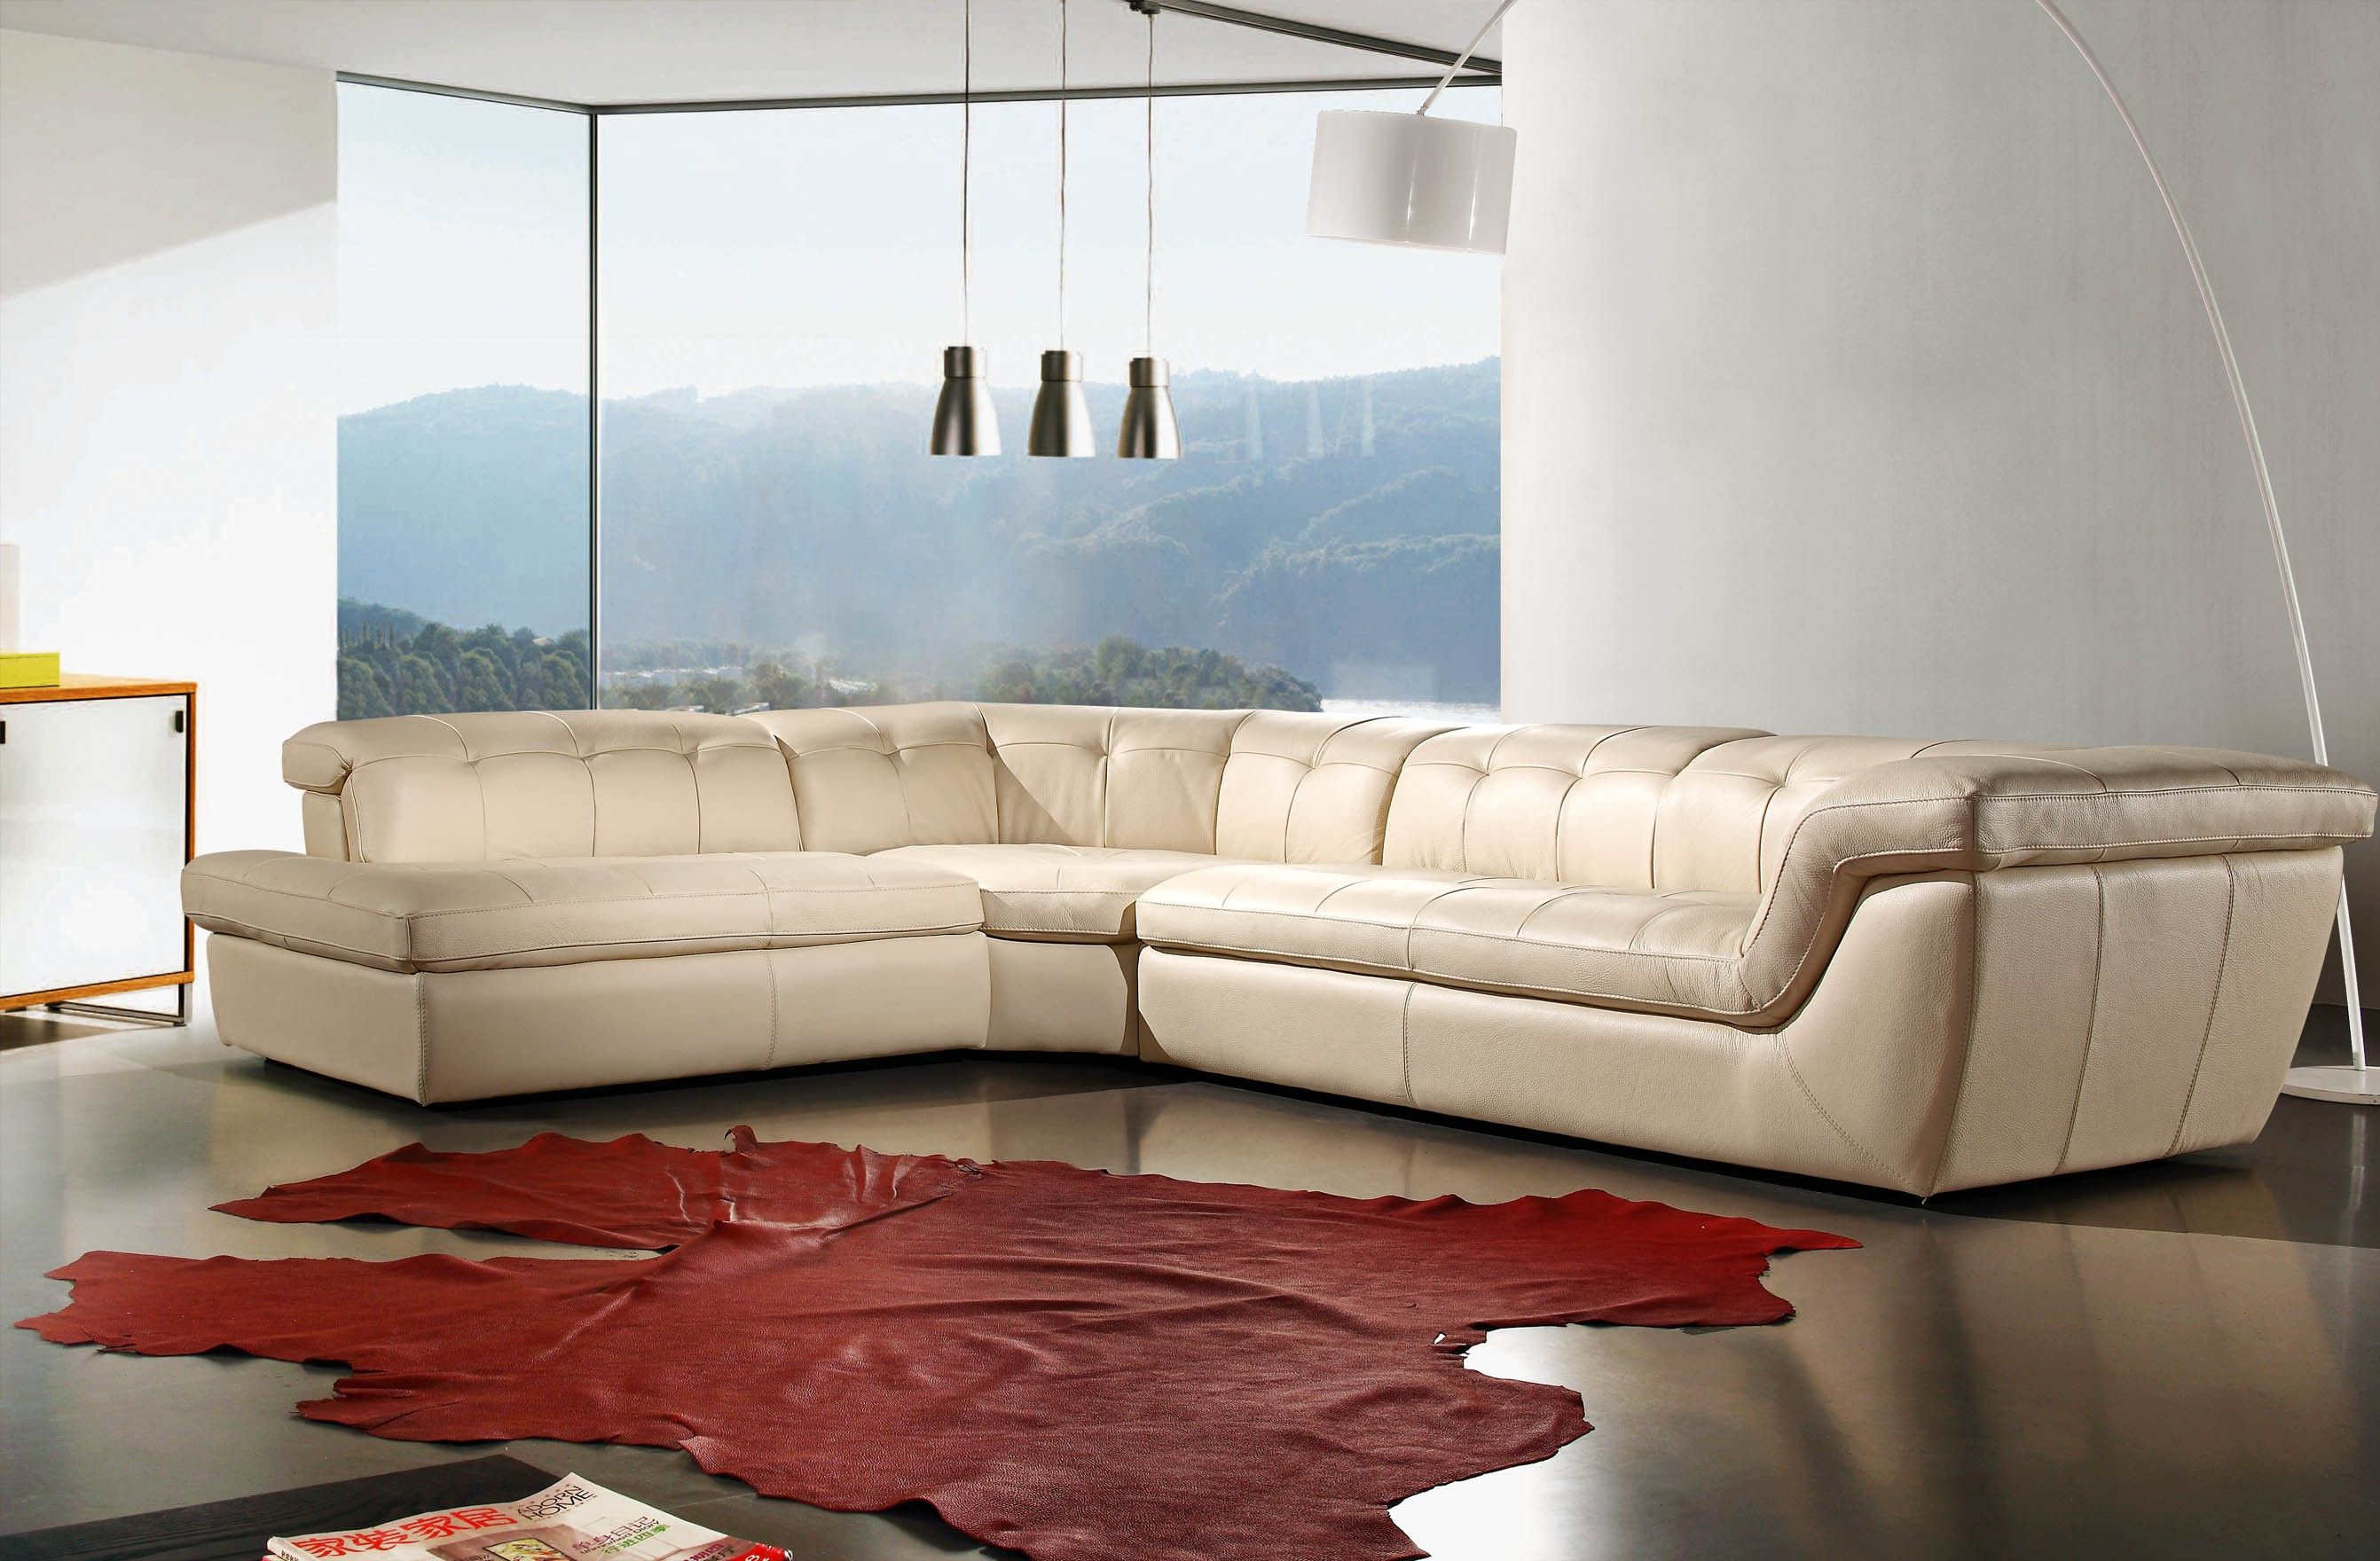 Living Room Design With Sectional Sofa Magnificent American Contemporary Sofa 10 Тыс Изображений Найдено В Яндекс Decorating Inspiration